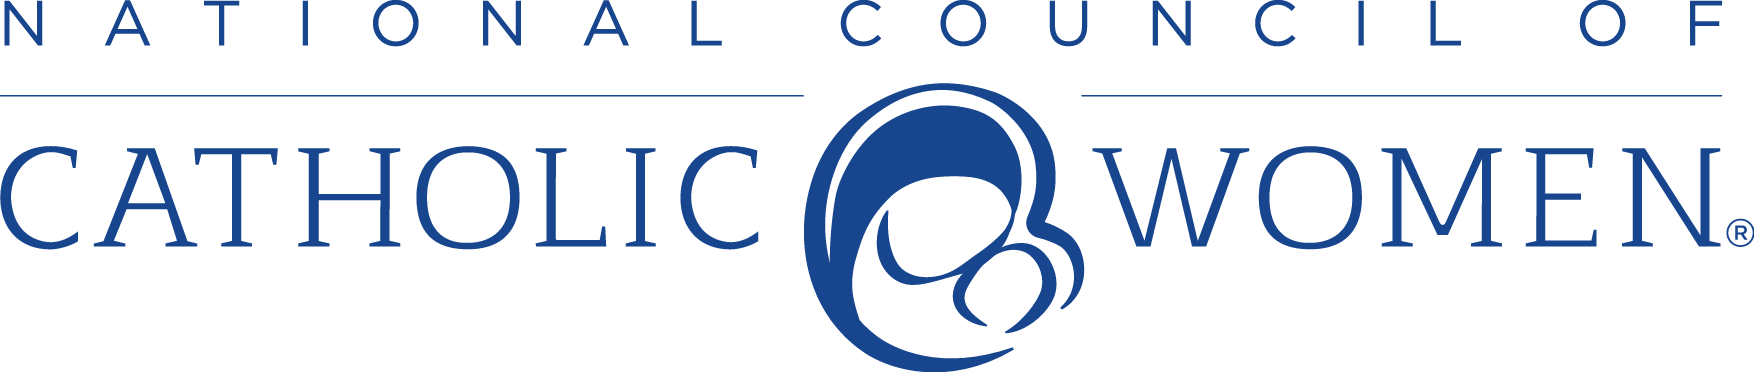 National Council of Catholic Women